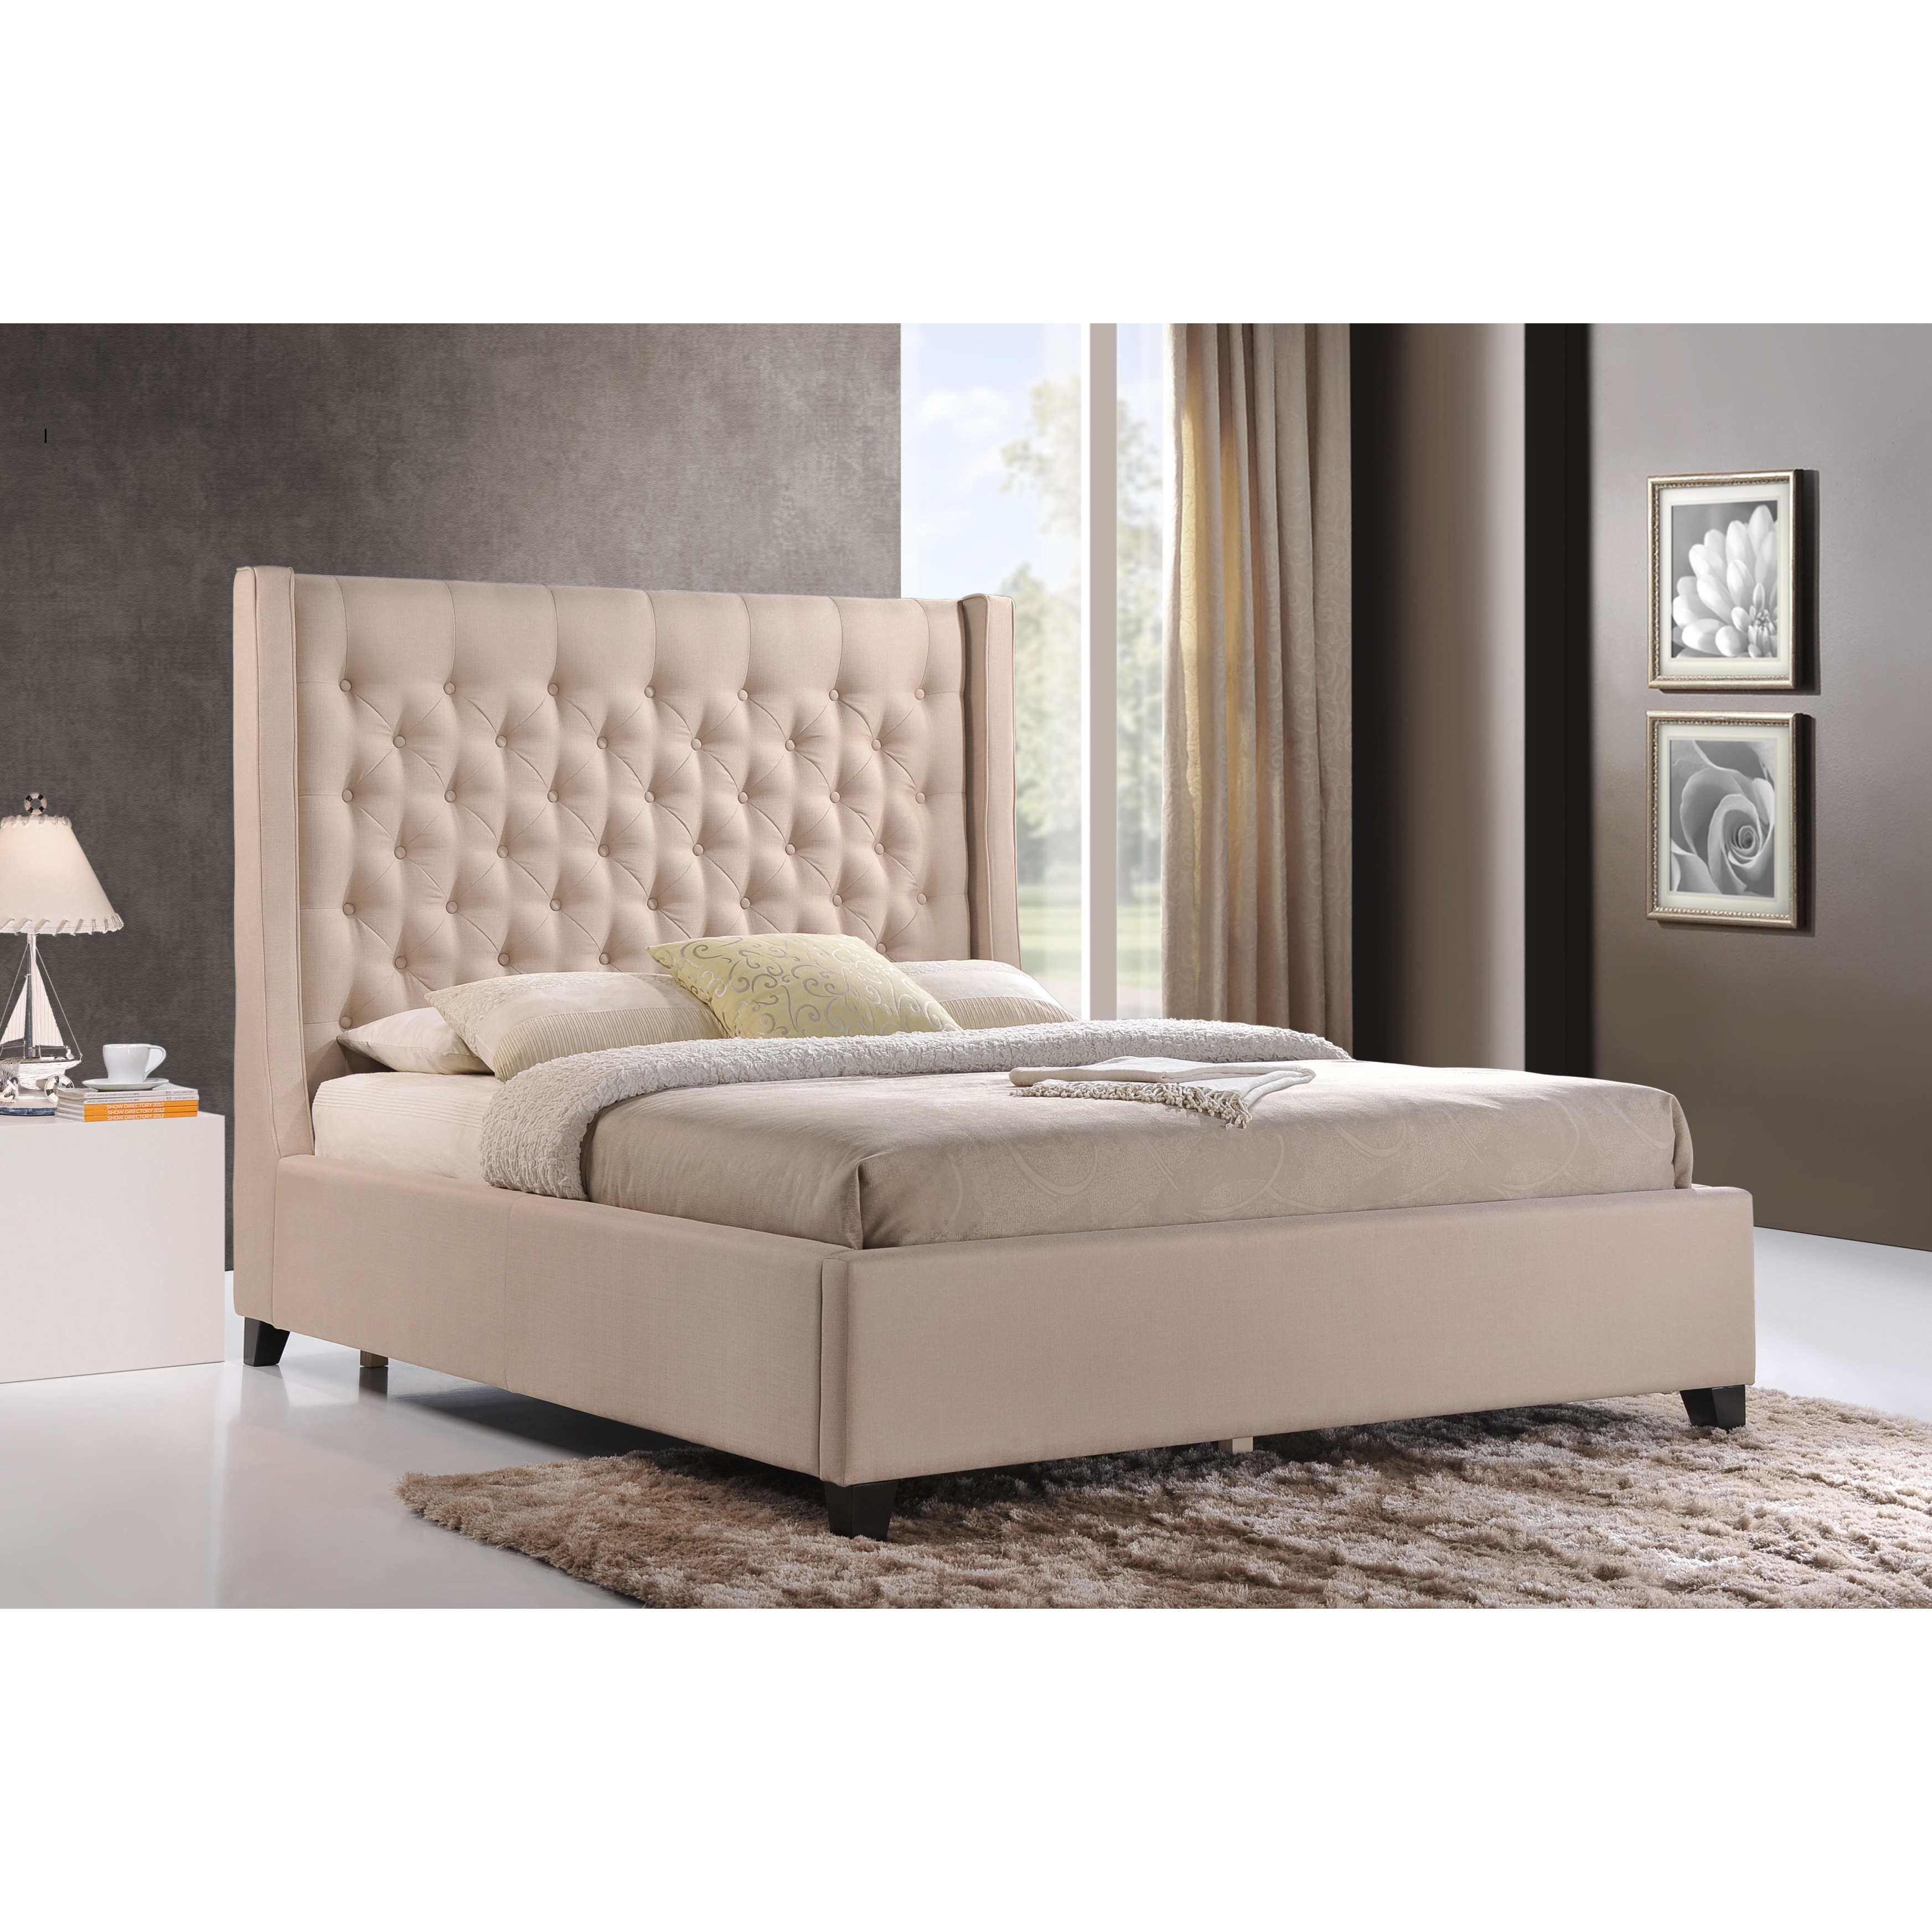 Huntington Bedroom Furniture Luxeo Huntington King Size Tufted Upholstered Bed In Sand Color Fabric